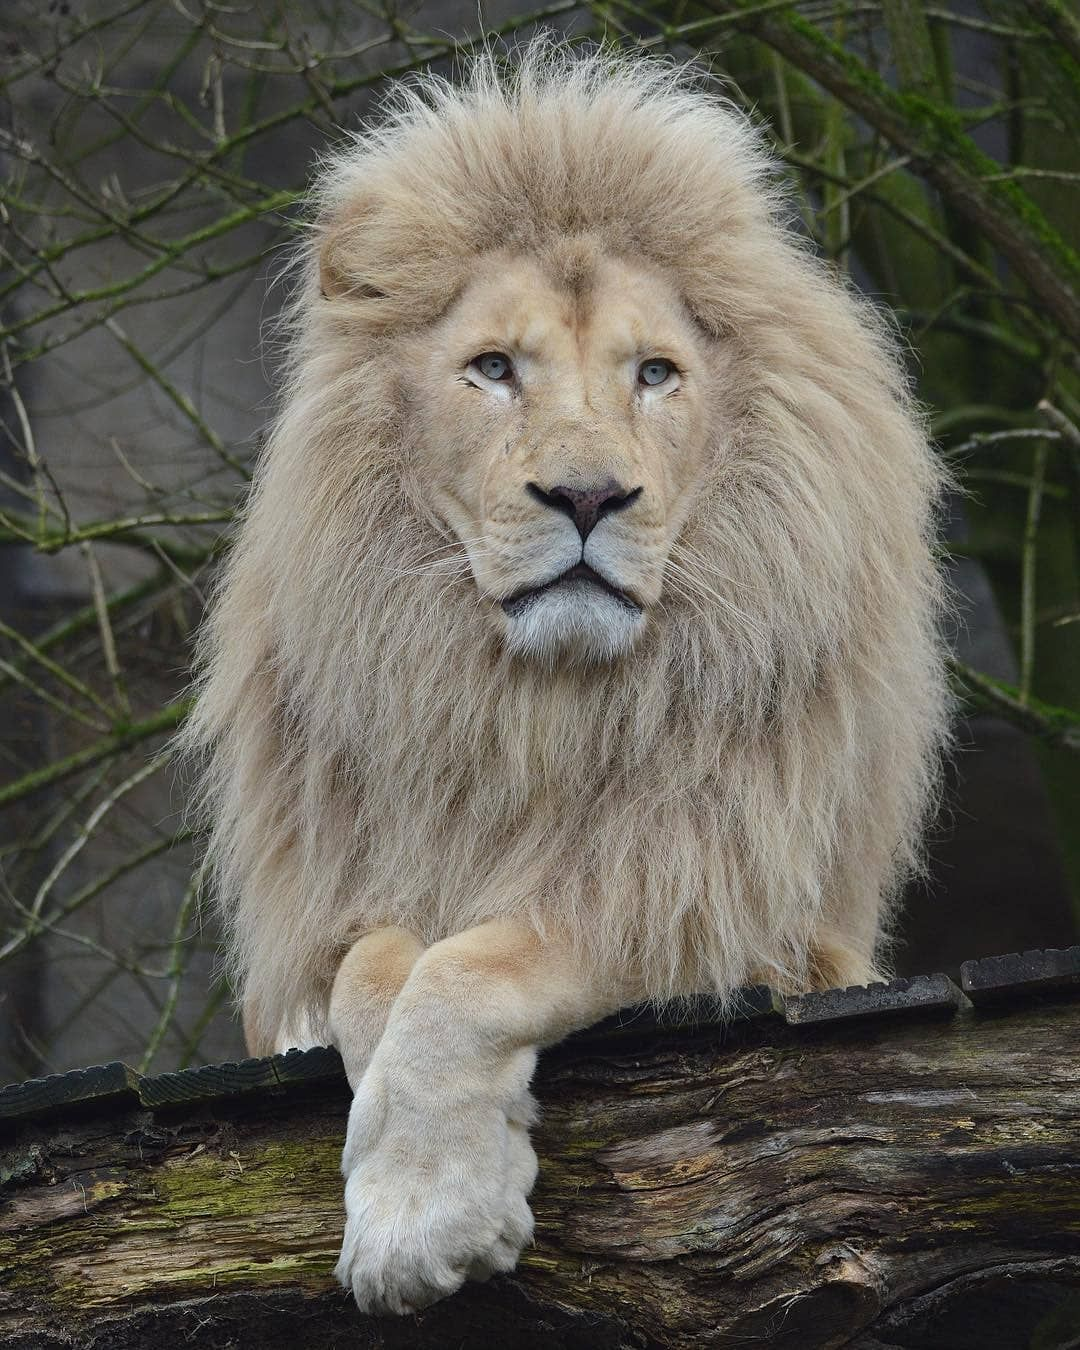 White Lion Photo By Mandenno Photography Wildgeography Lions Photos White Lion Lion Photography